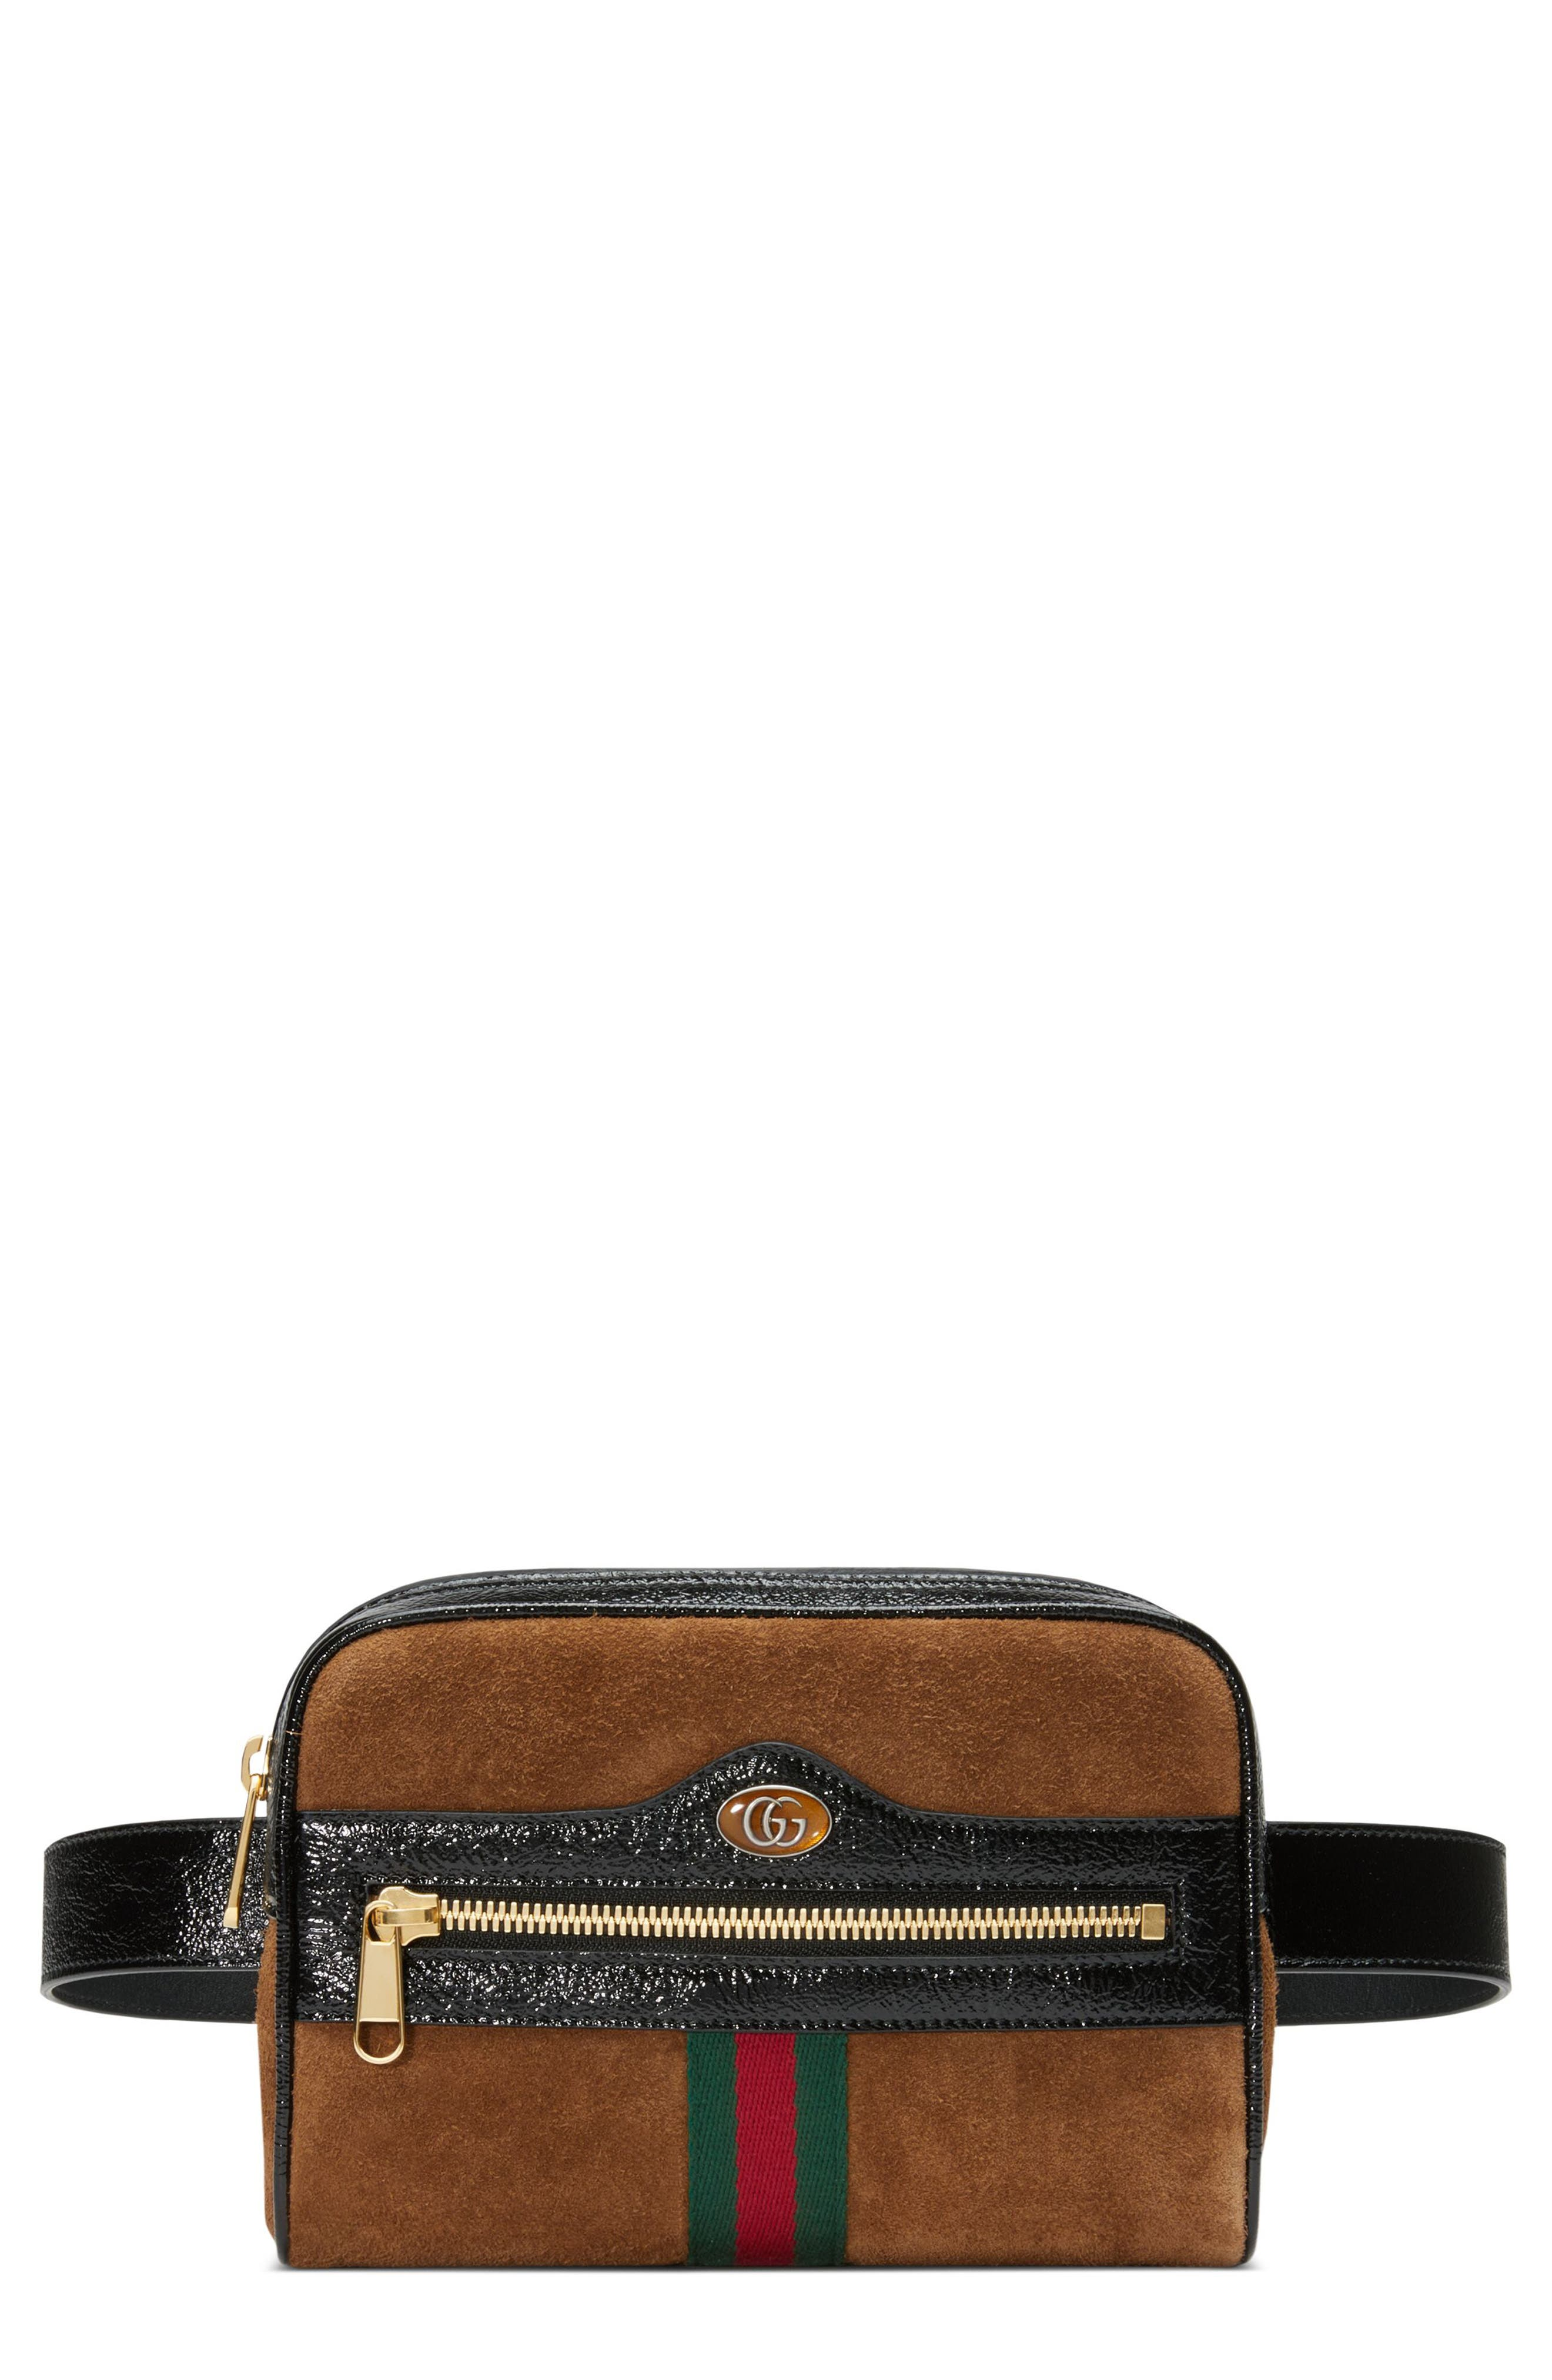 Ophidia Small Suede Belt Bag,                         Main,                         color, NOCCIOLA/ NERO/ VERT RED